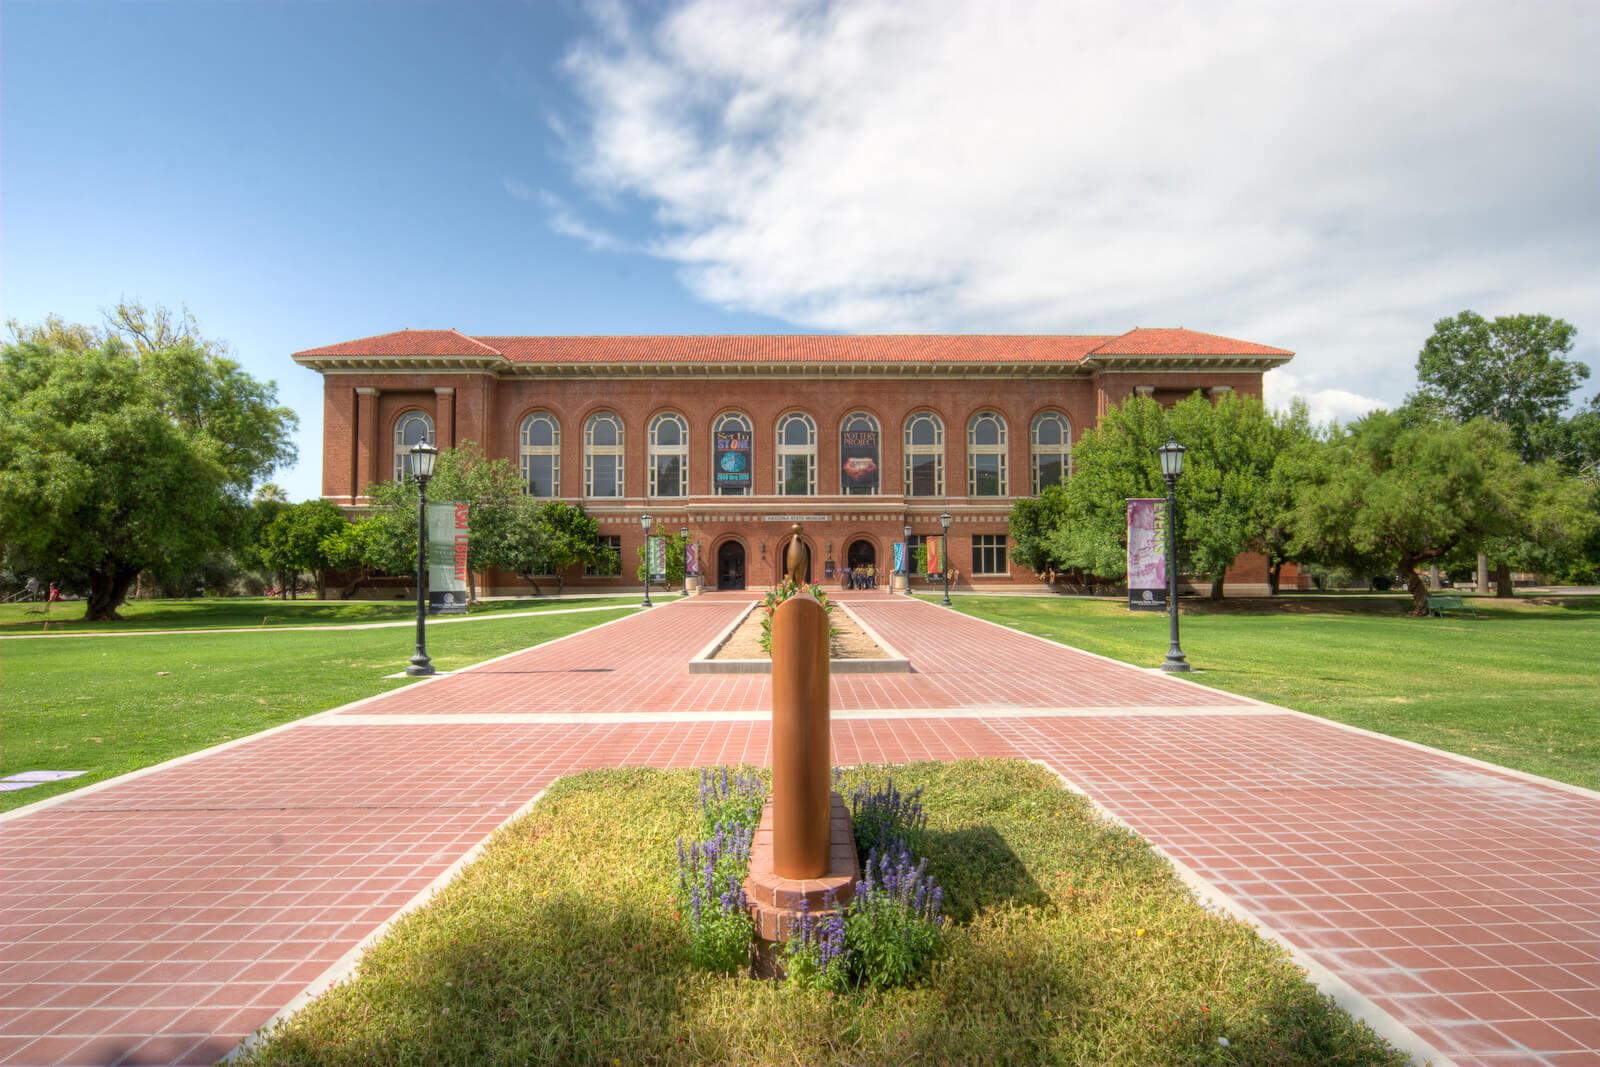 university of arizona creative writing masters Collegexpress scholarship profile: the university of arizona richard shelton creative writing award search for more scholarships and colleges join collegexpress.